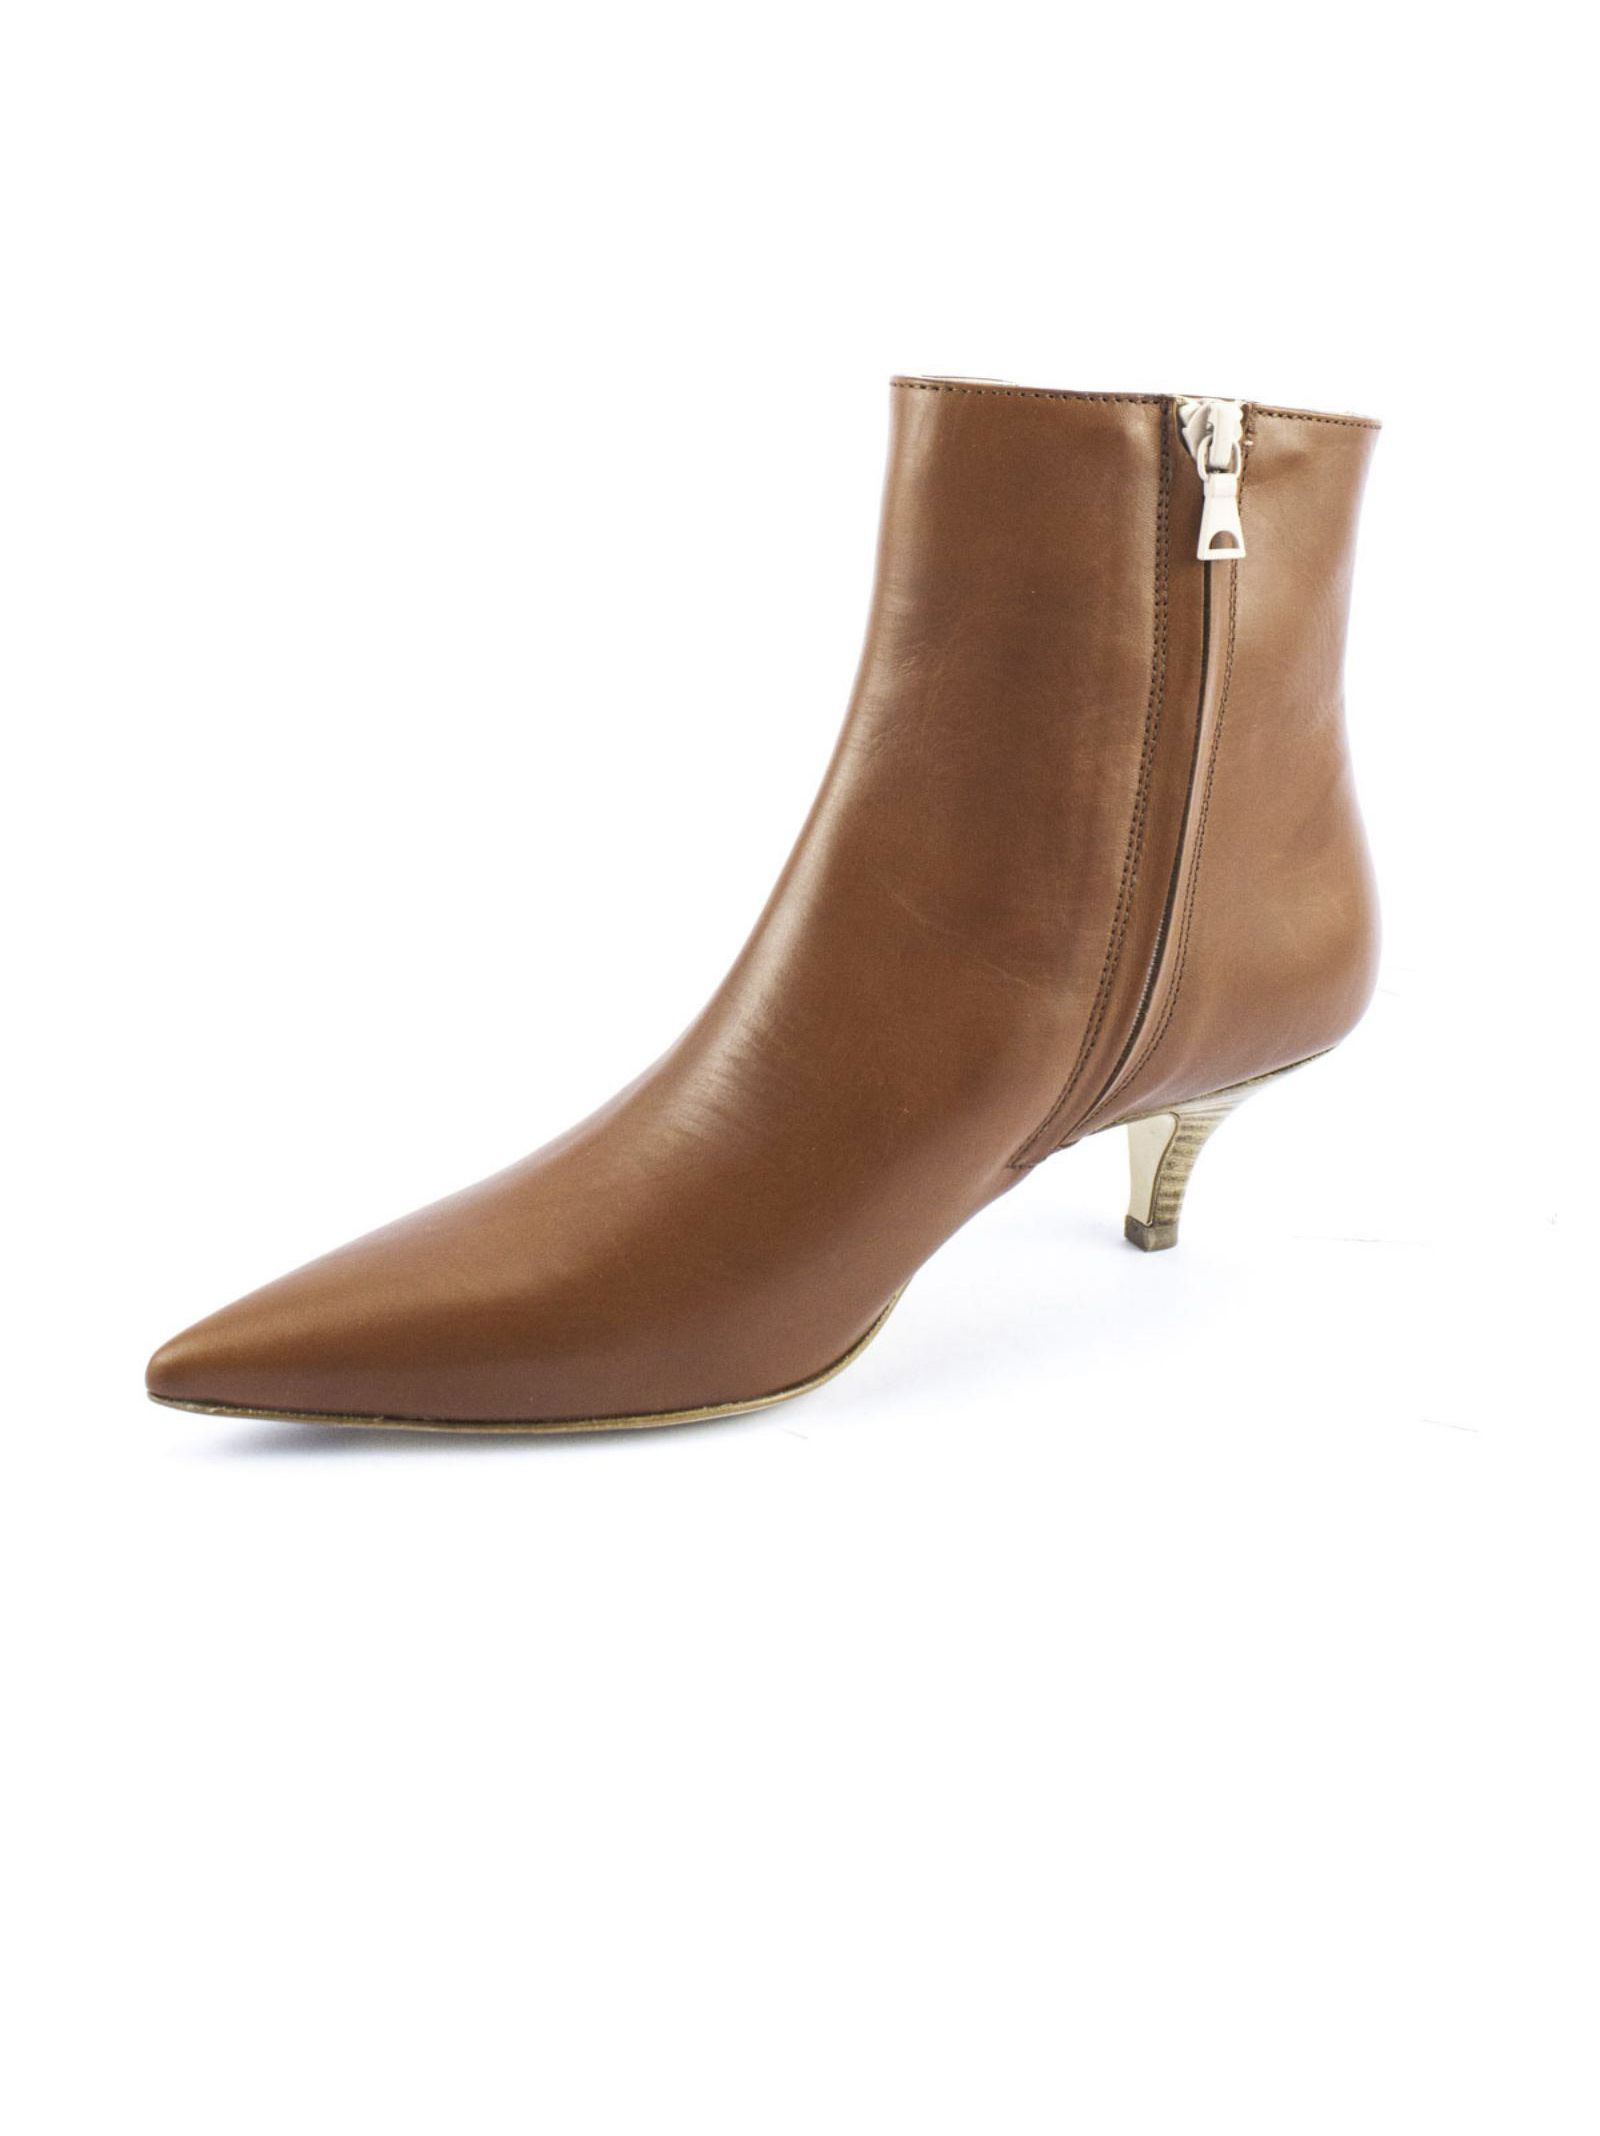 ROBERTO FESTA Brown Calf Leather Ankle Boots Free Shipping Many Kinds Of Low Shipping Online Original Outlet 2018 Newest Clearance Looking For VscmDa3